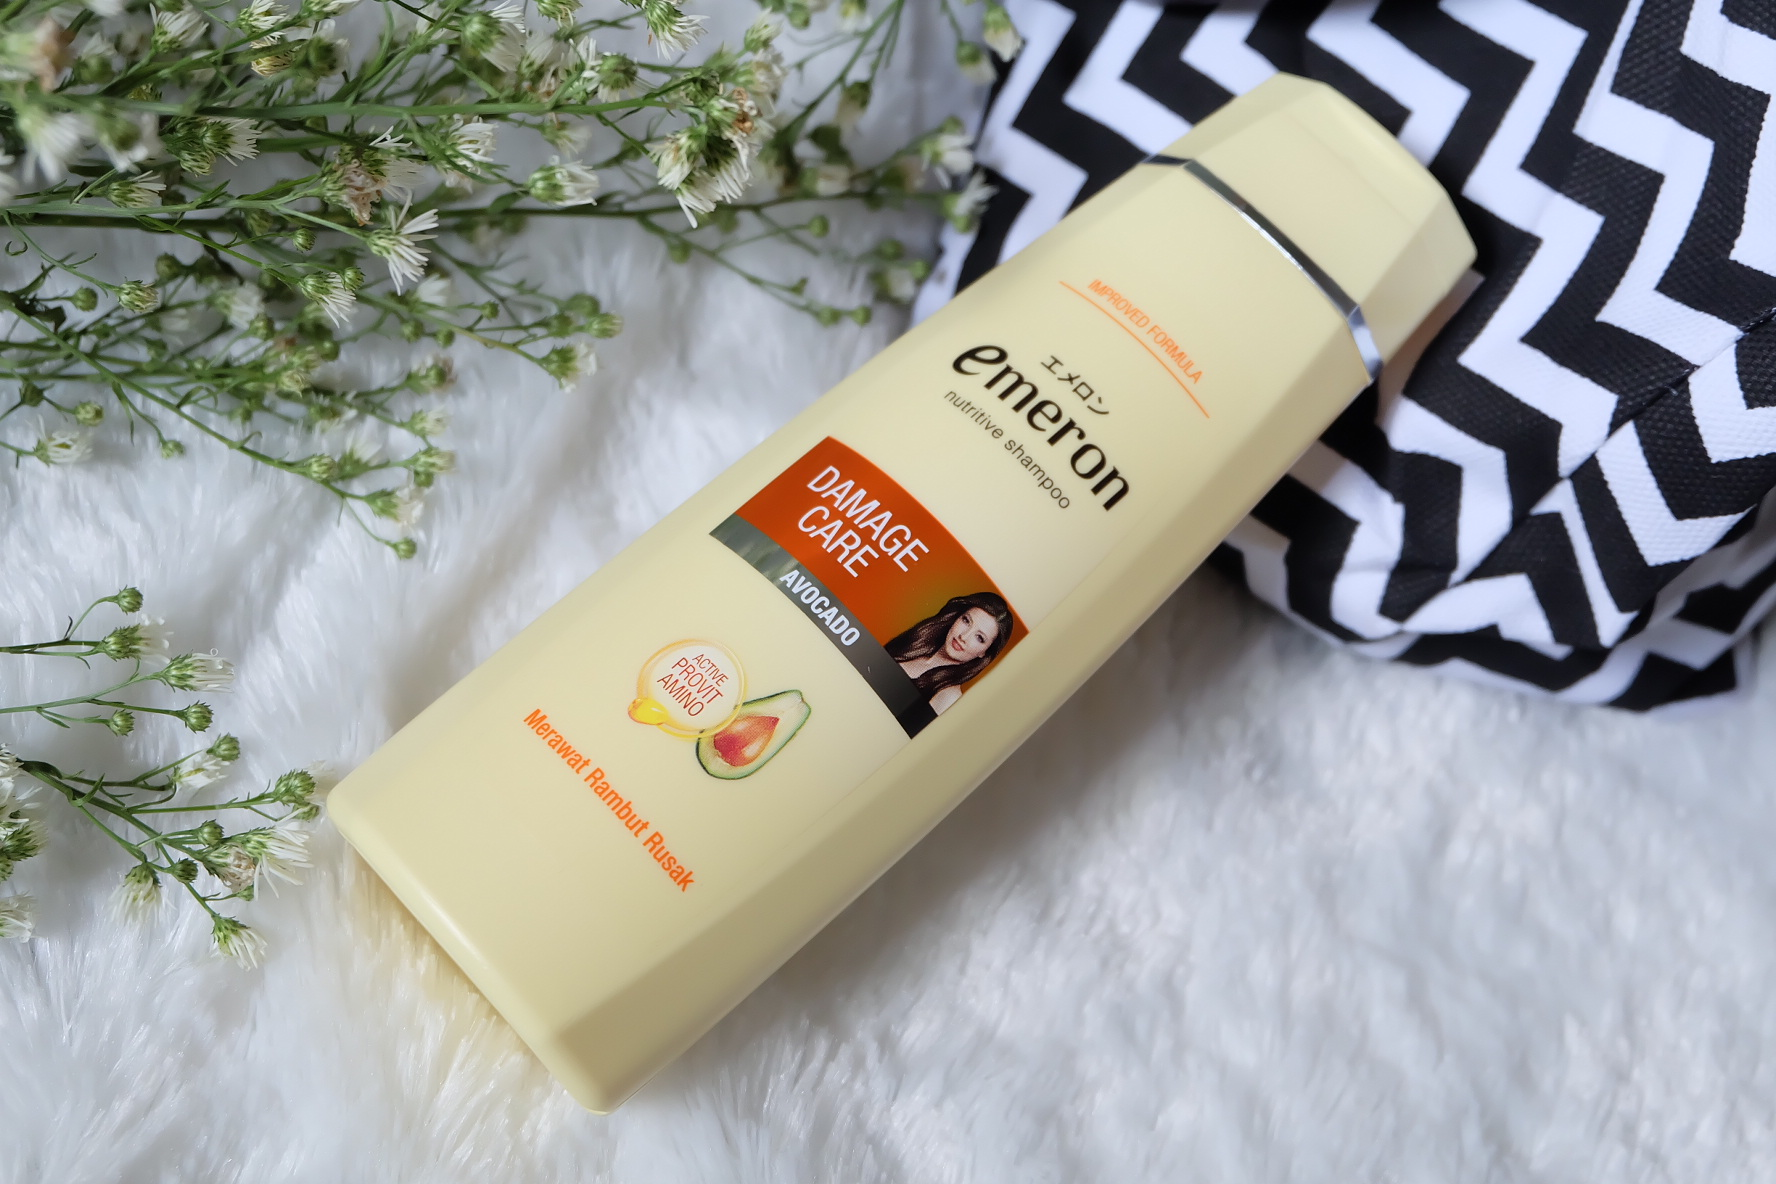 [Review] Emeron Complete Hair Damage Care (Shampoo, Hair Vitamin and Conditioner)